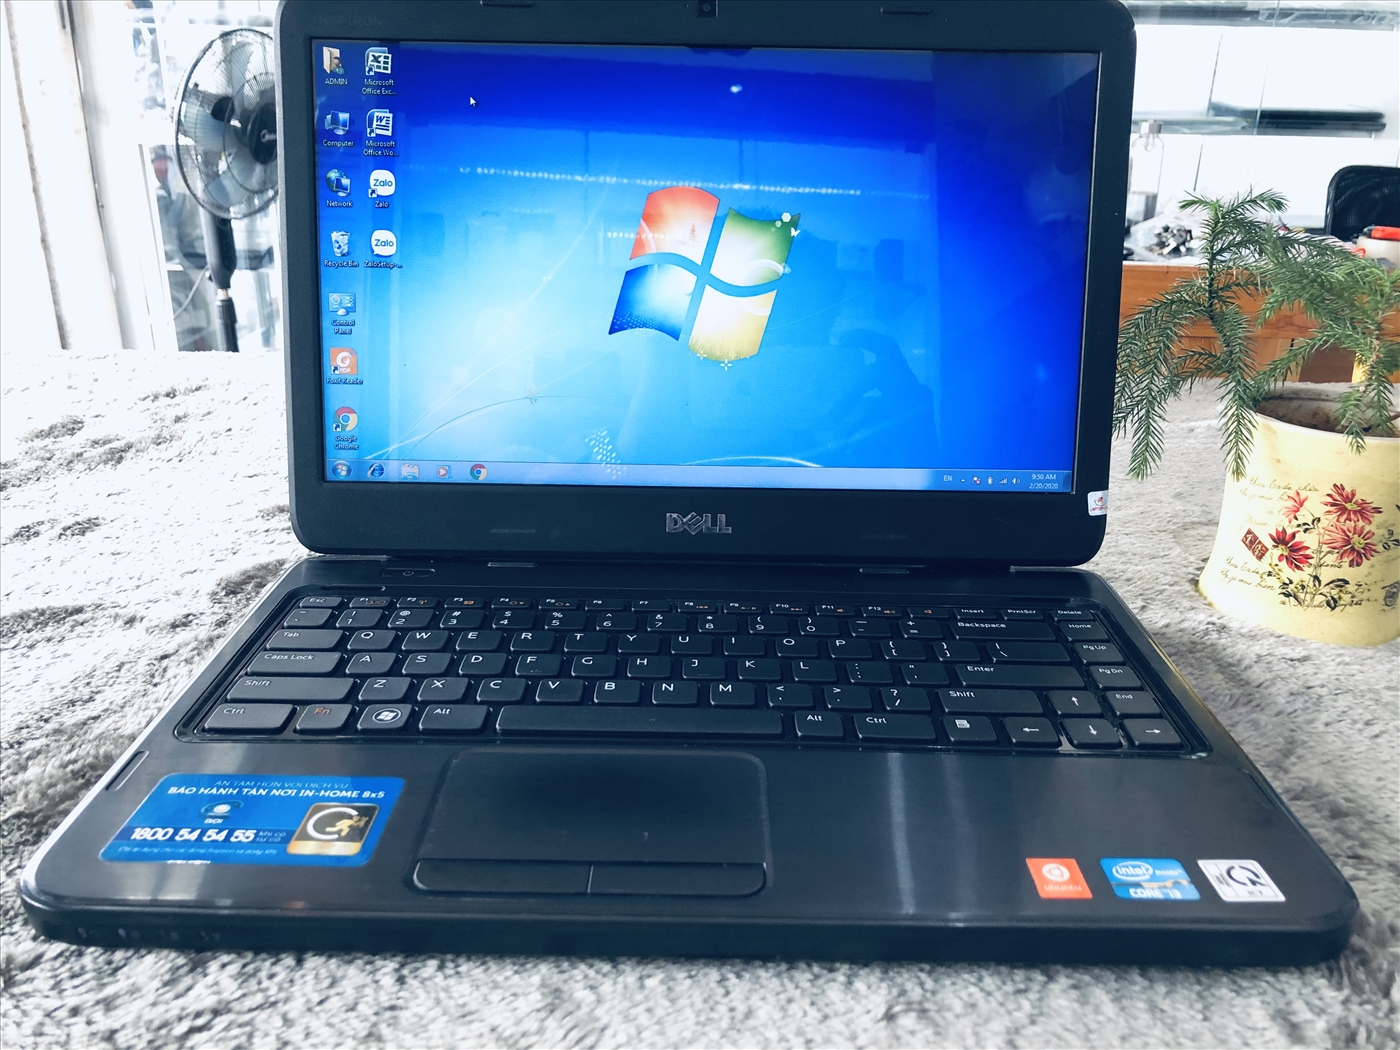 dell-inspiron-3420-core-i5-3210m-ram-4gb-ssd-120gb-140-led-hd